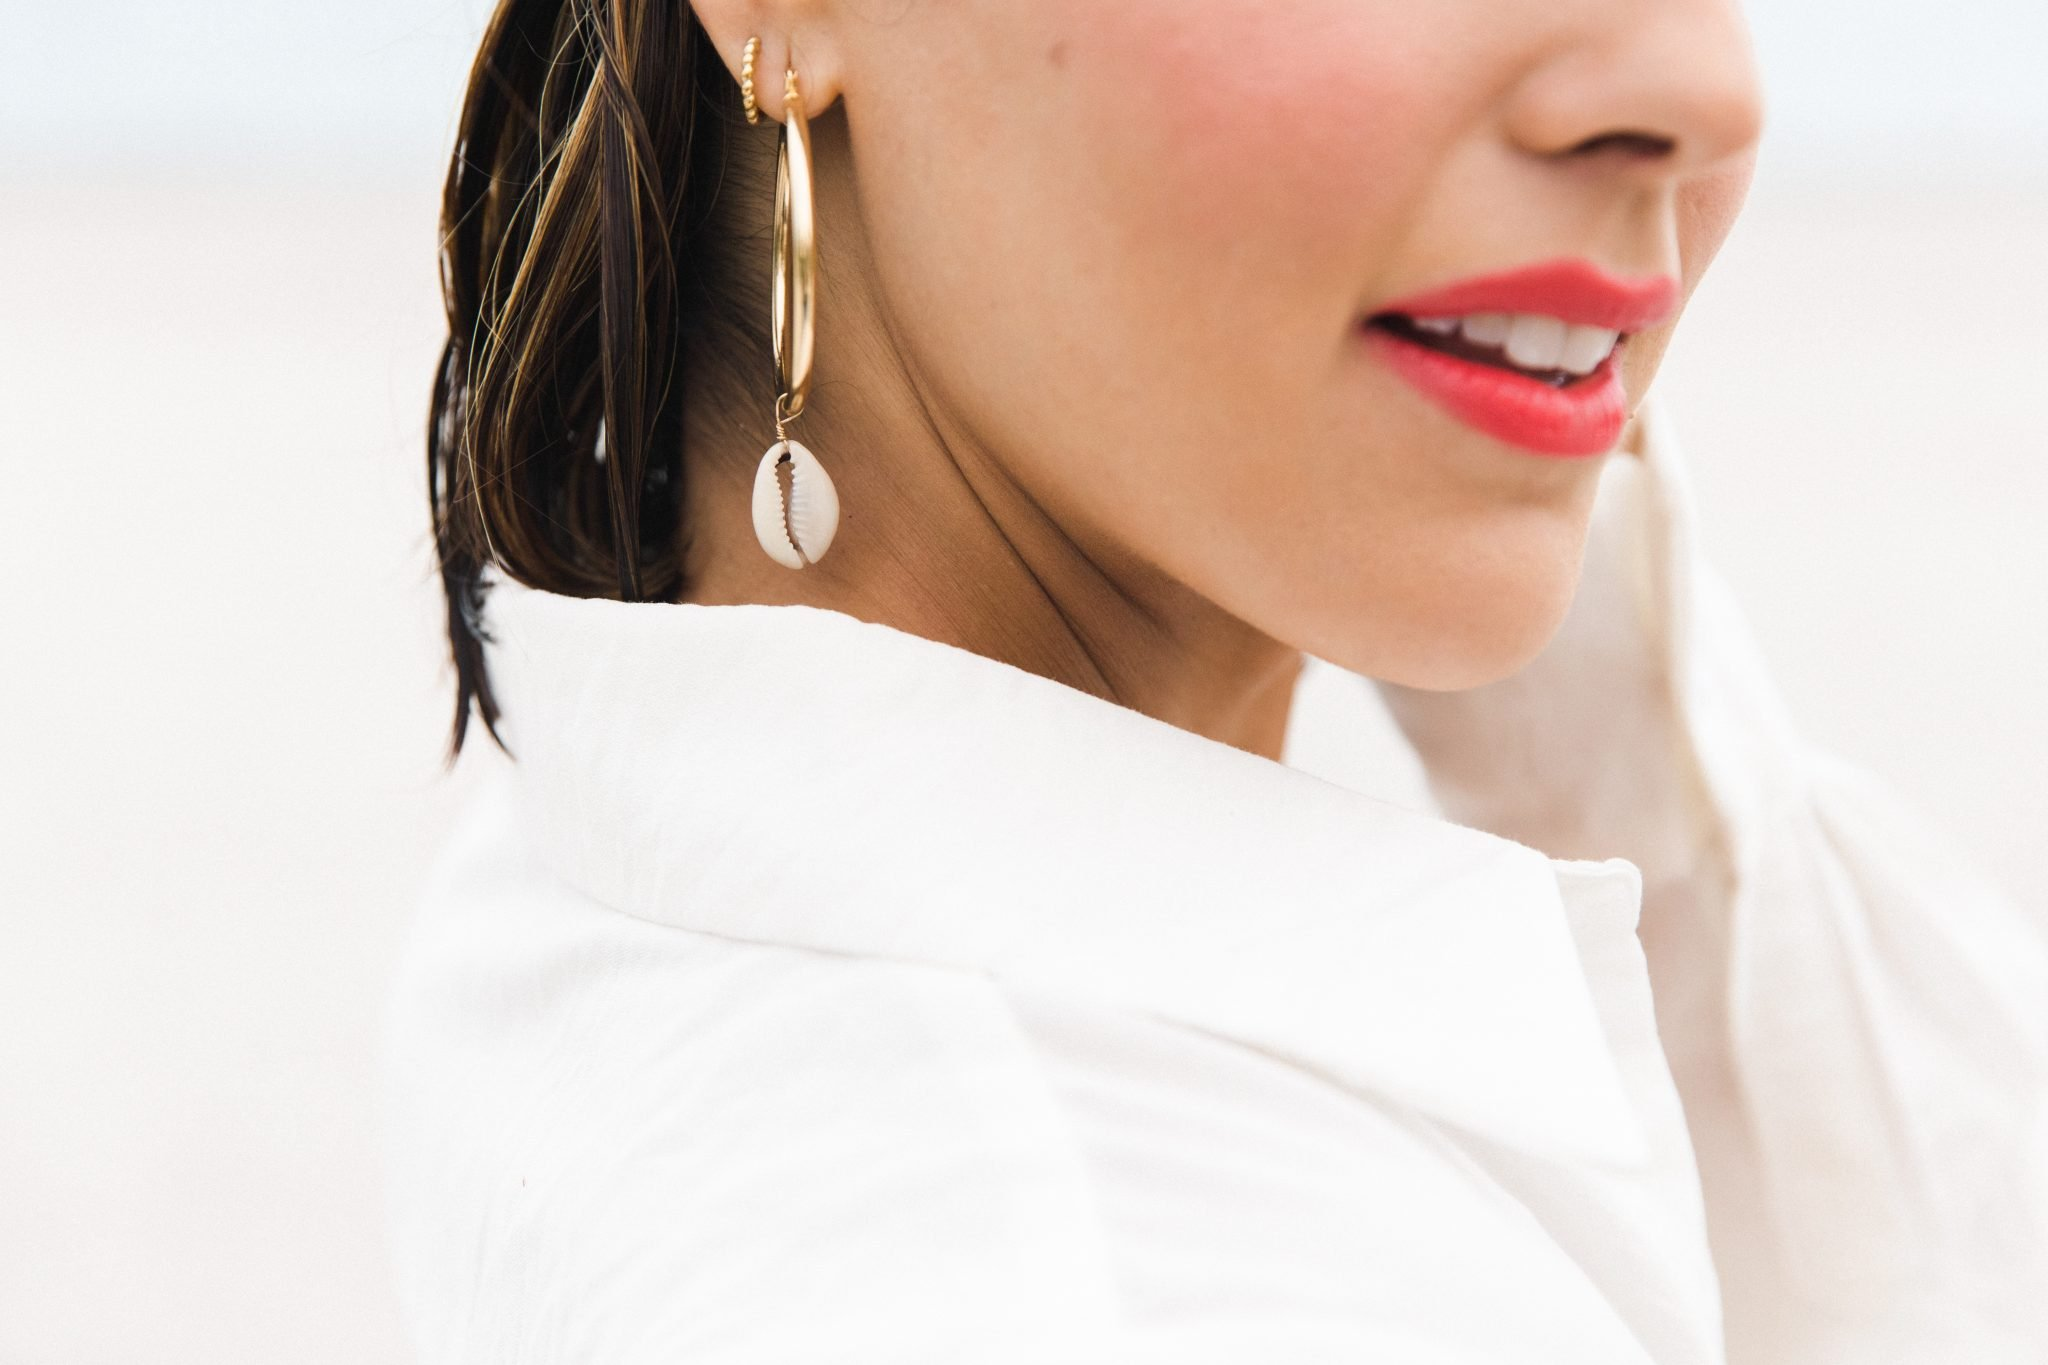 taudrey-x-kelly-saks-playa-collection-san-juan-earrings